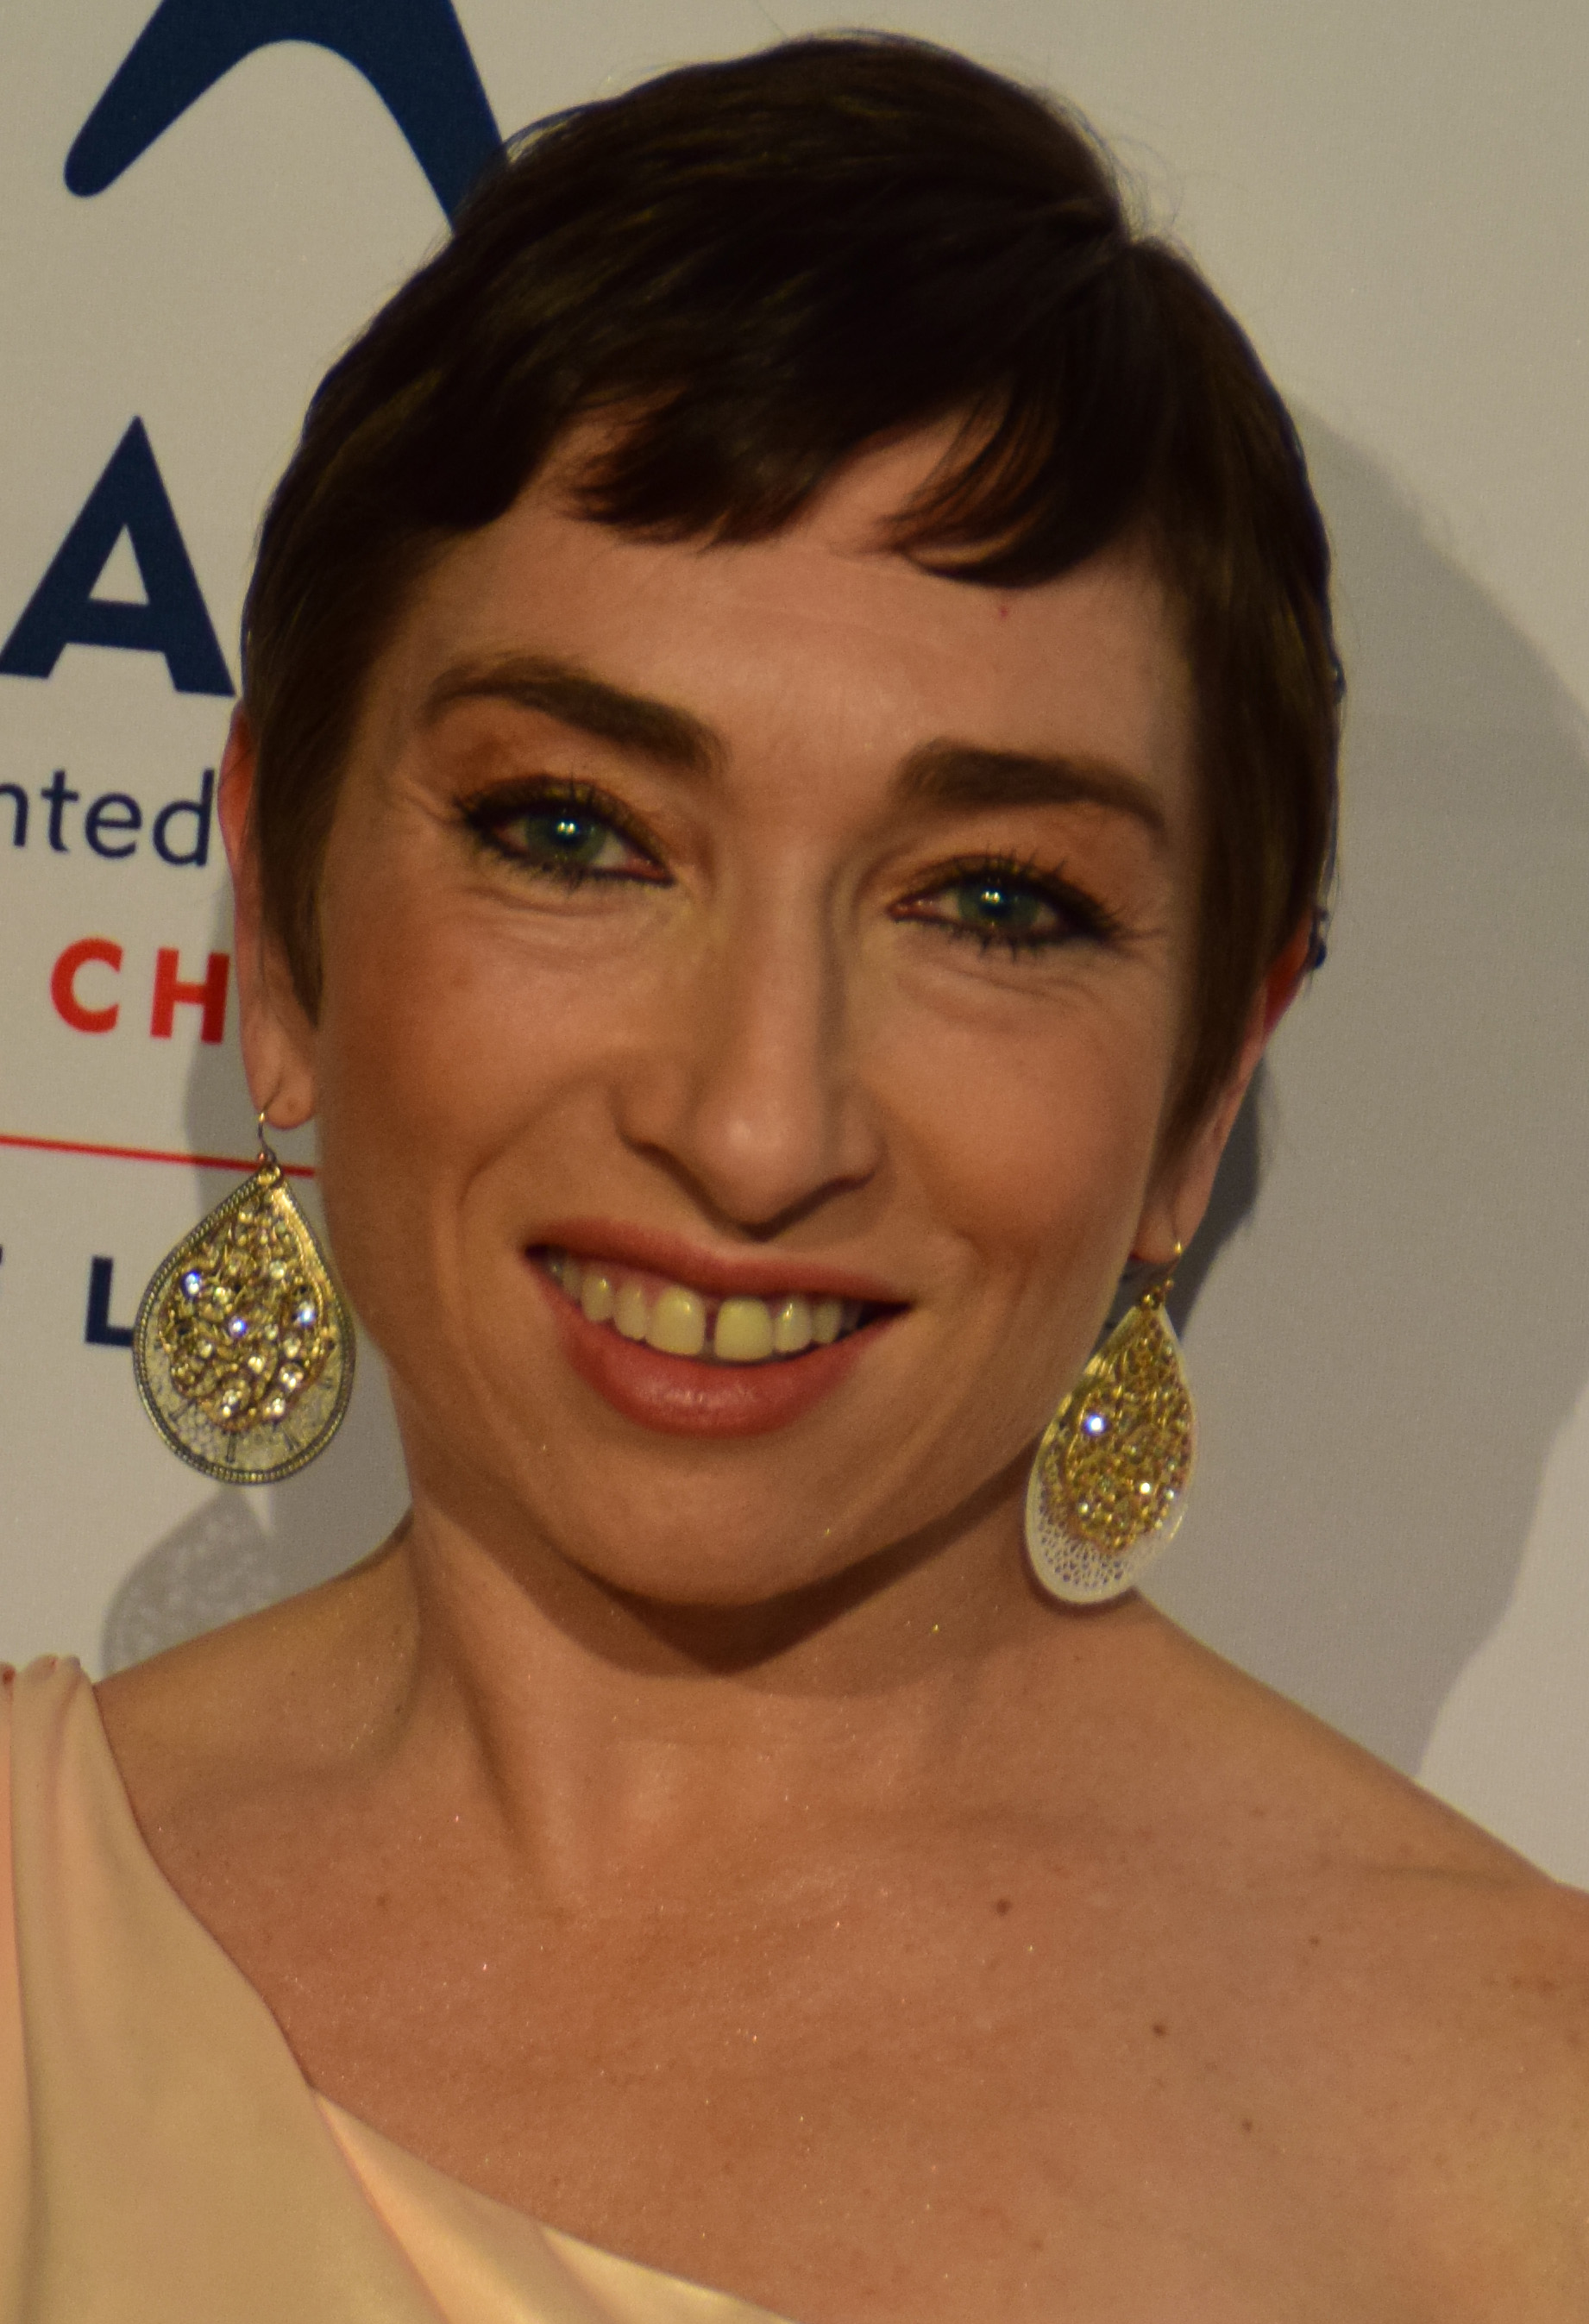 Naomi Grossman earned a  million dollar salary - leaving the net worth at 2 million in 2018